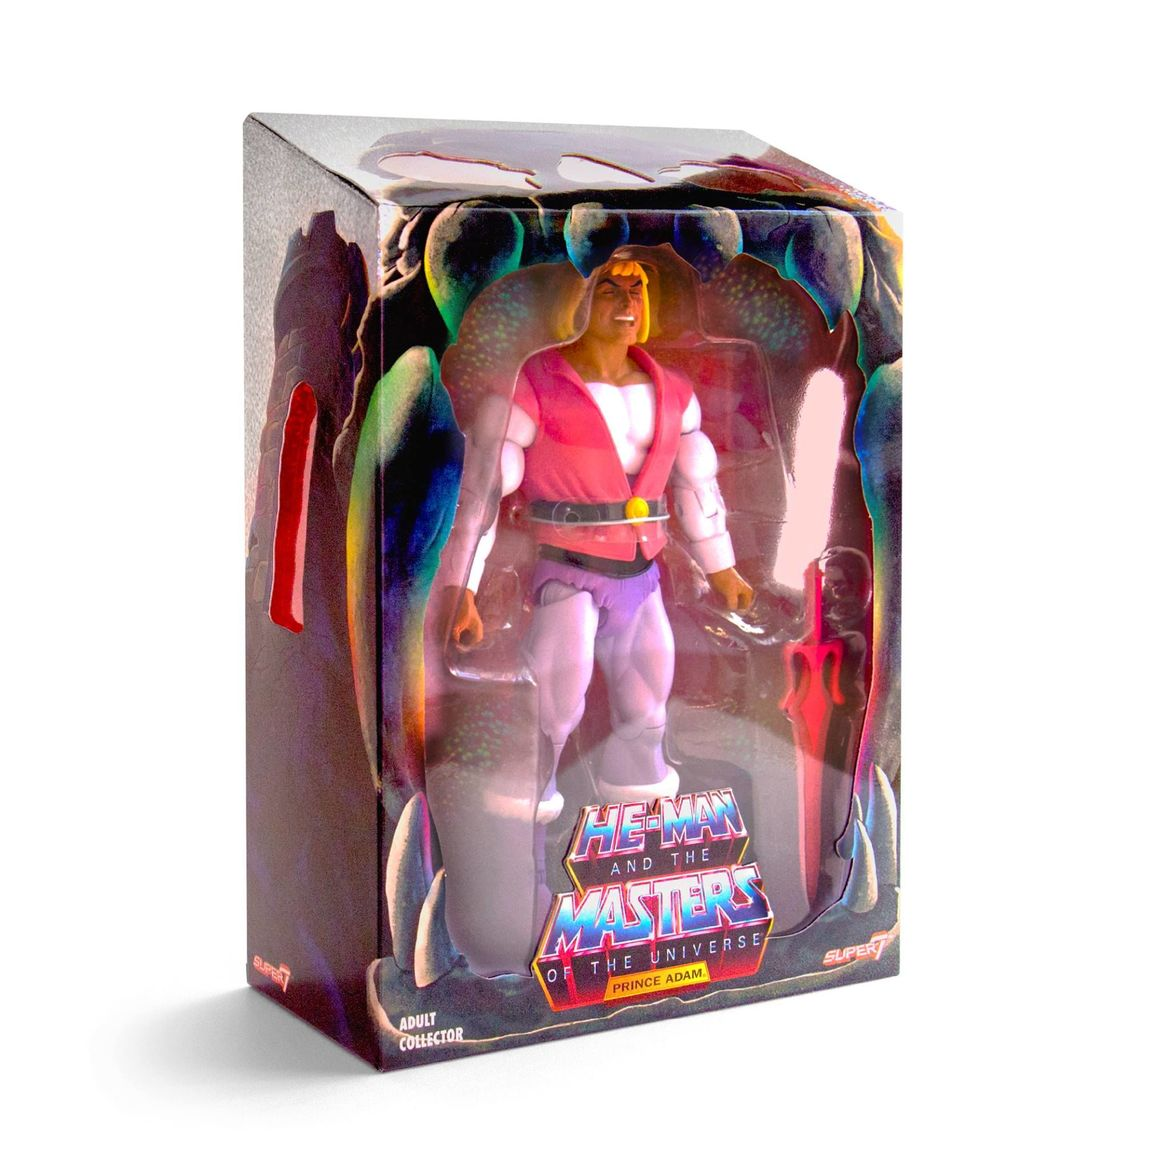 Laughing Prince Adam in box